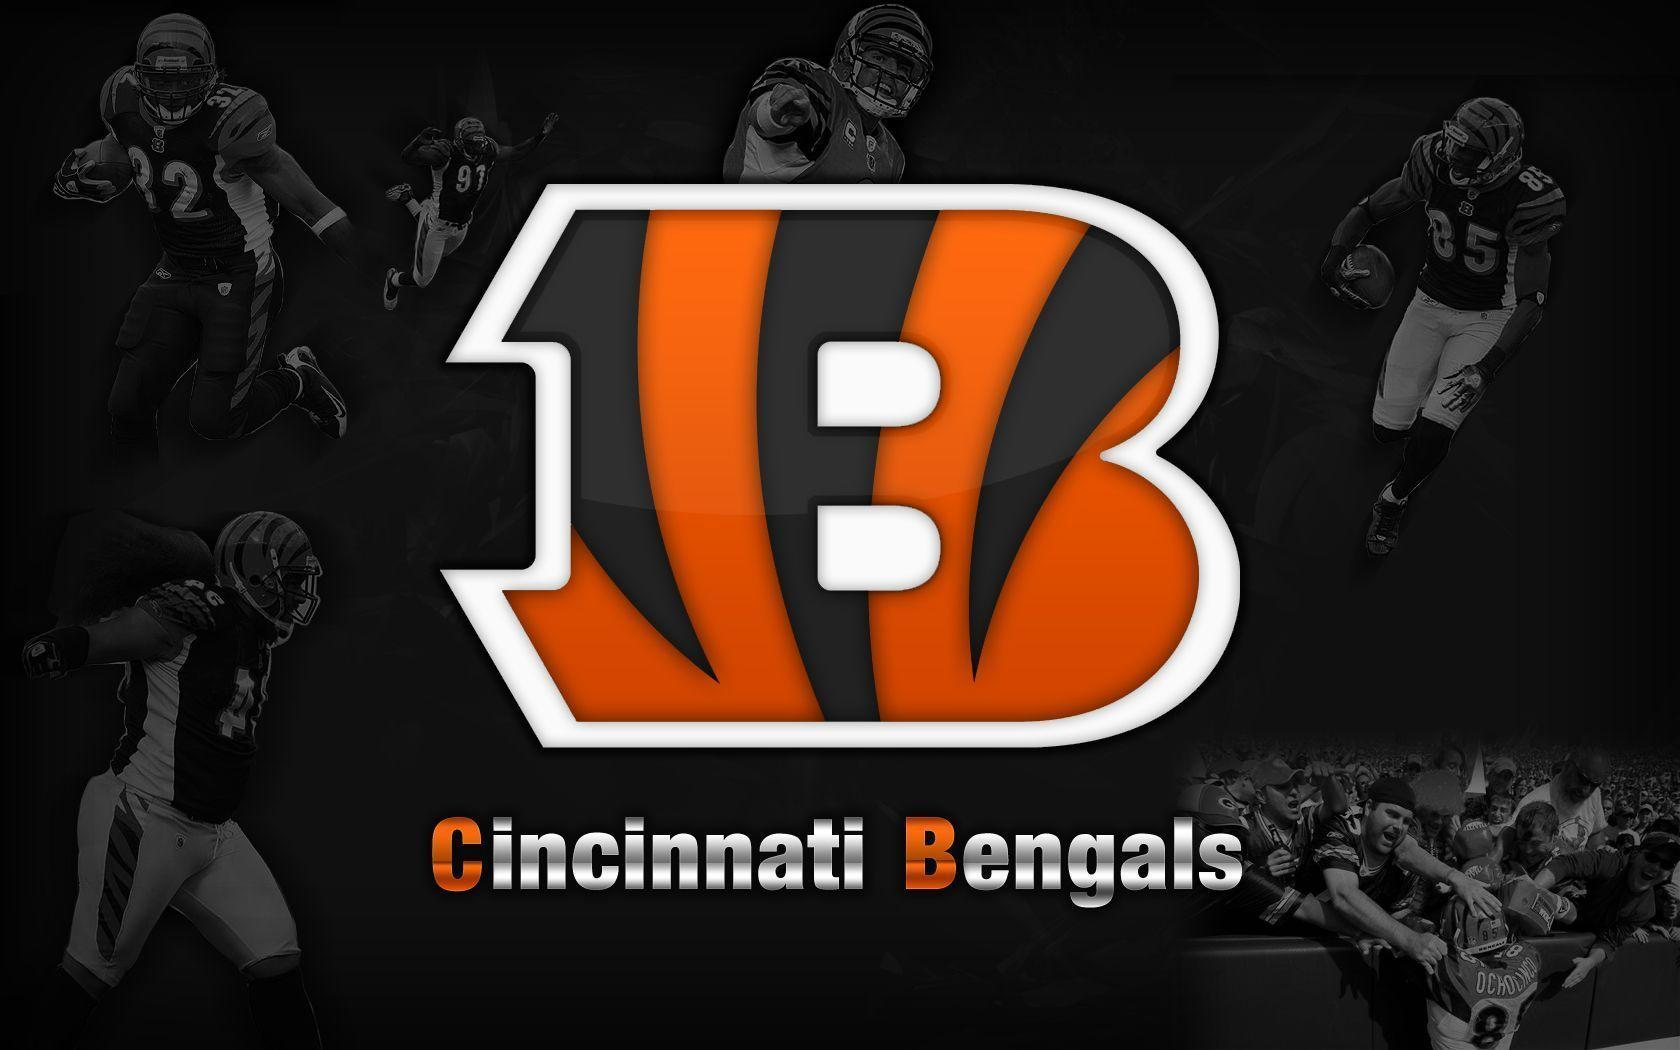 Cincinnati Bengals | HD Wallpapers Base